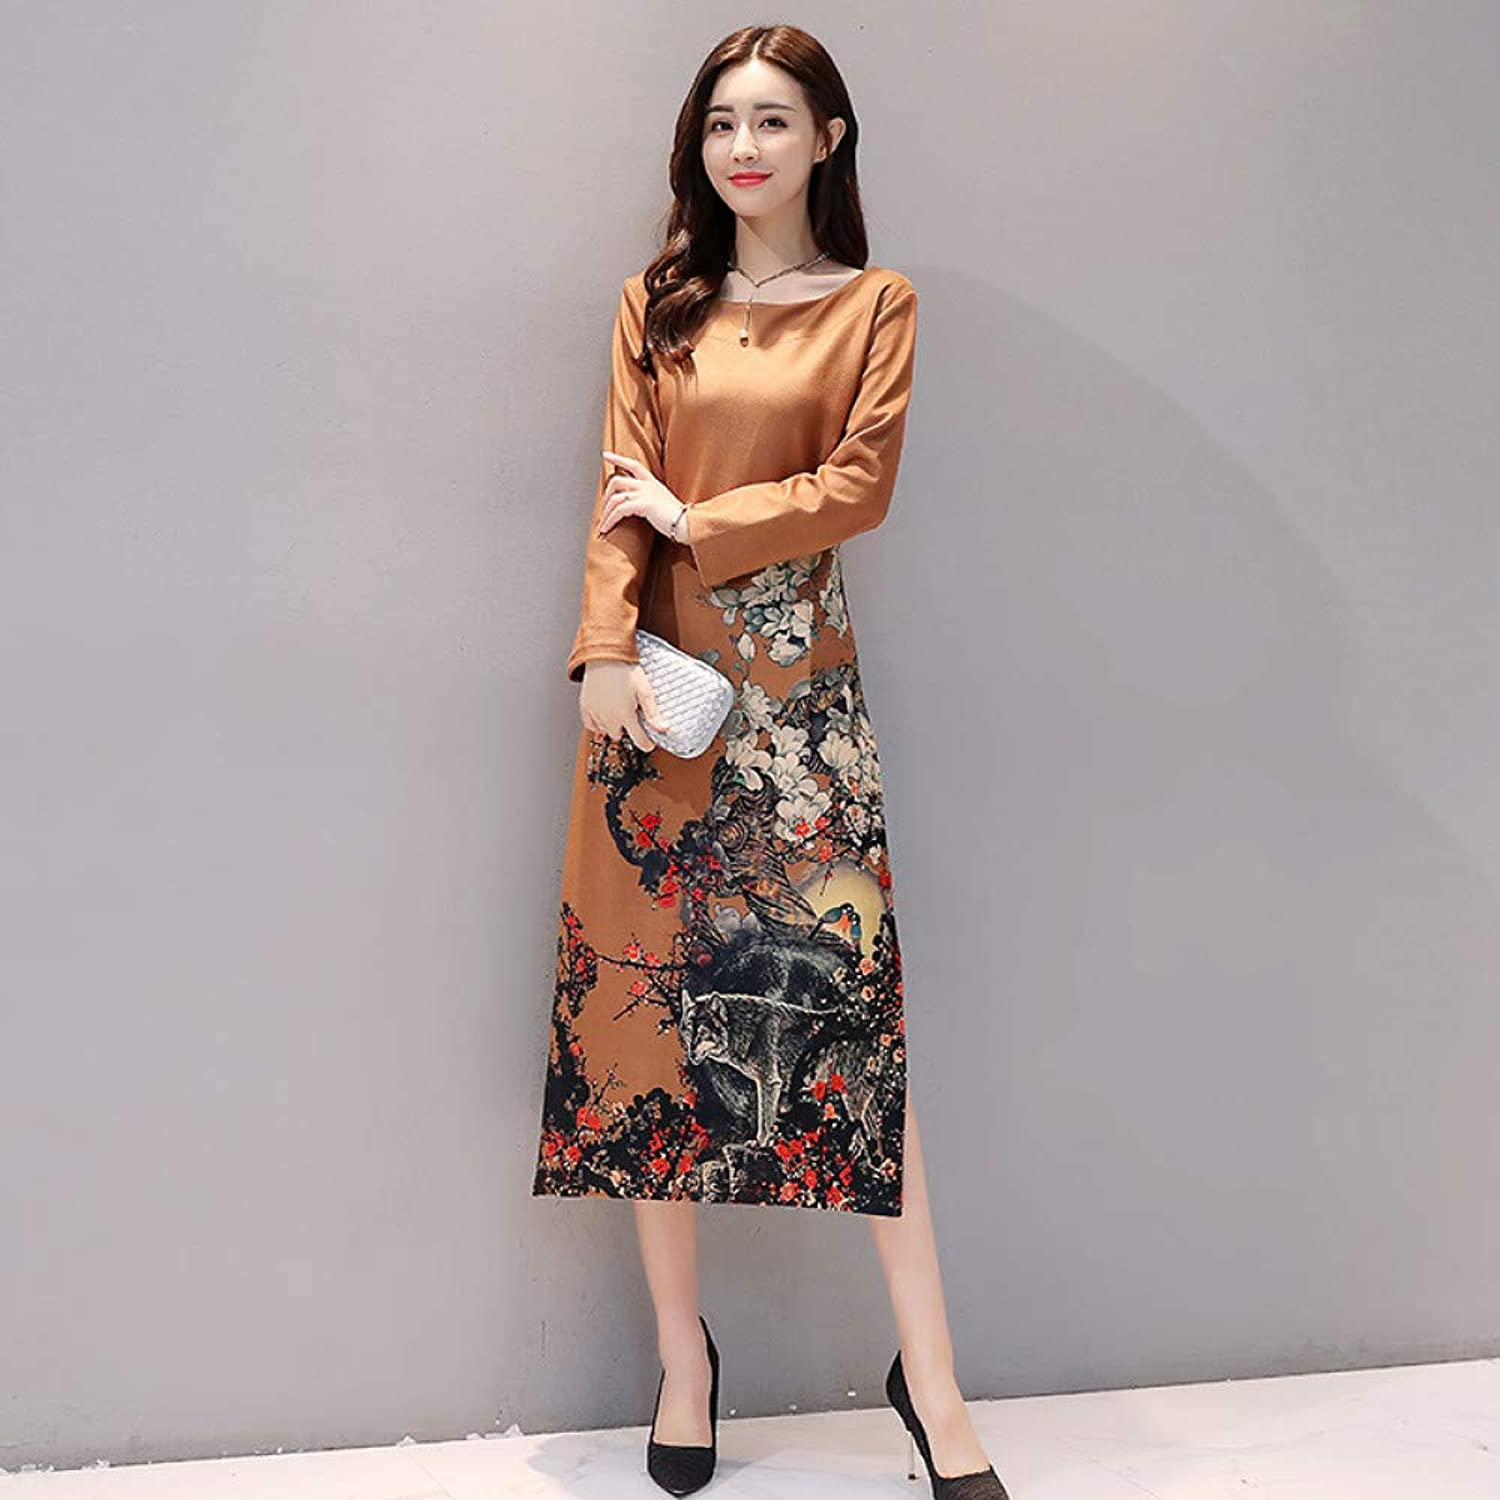 Cxlyq Dresses Autumn Slim Thin Large Size Women's Vintage Print Long Sleeve Cheongsam Dress